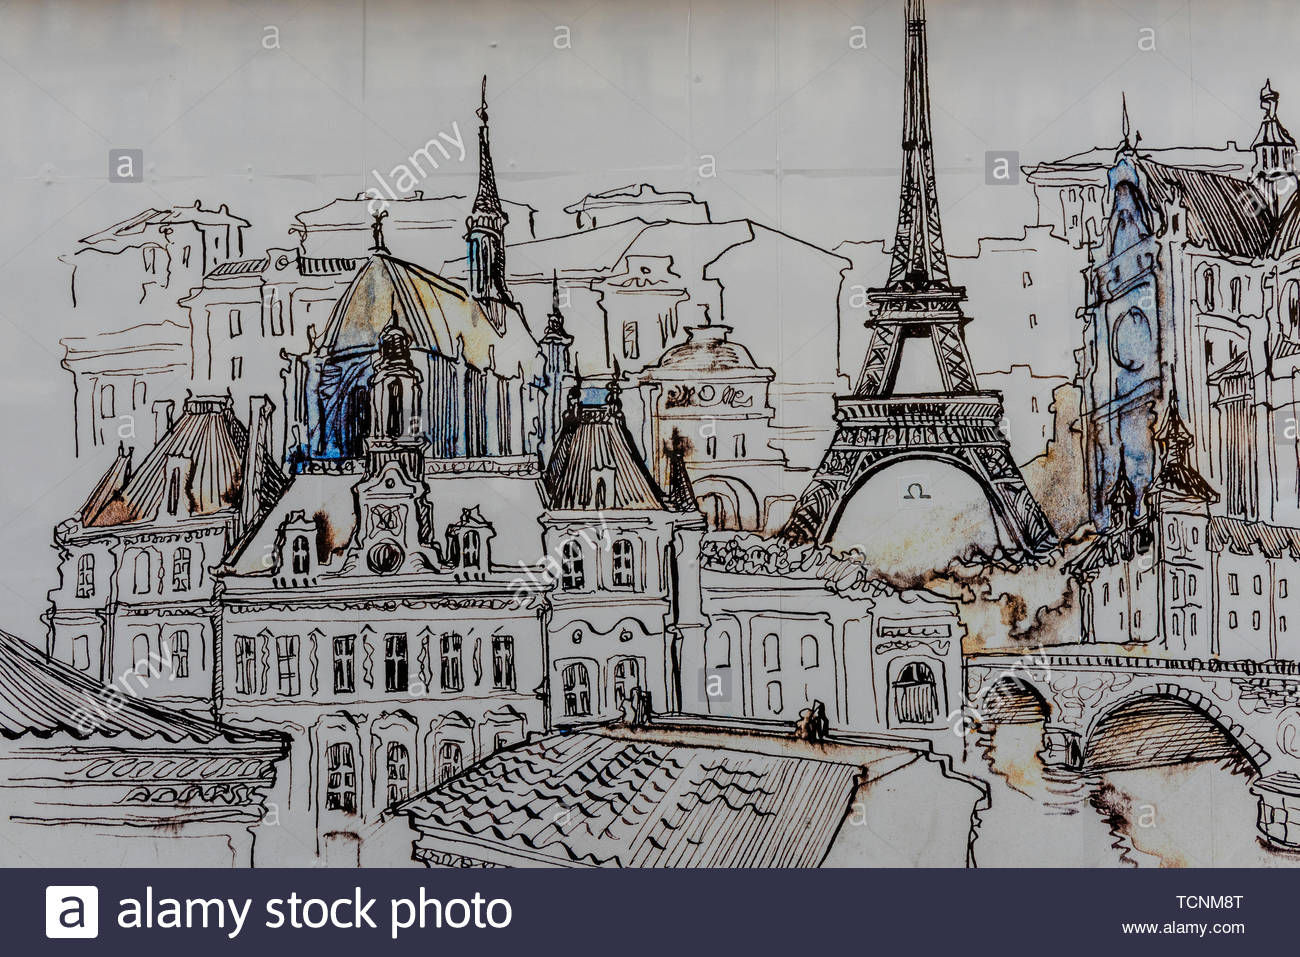 A mural on the side of a building shows the architectural wonders of Paris, France. - Stock Image